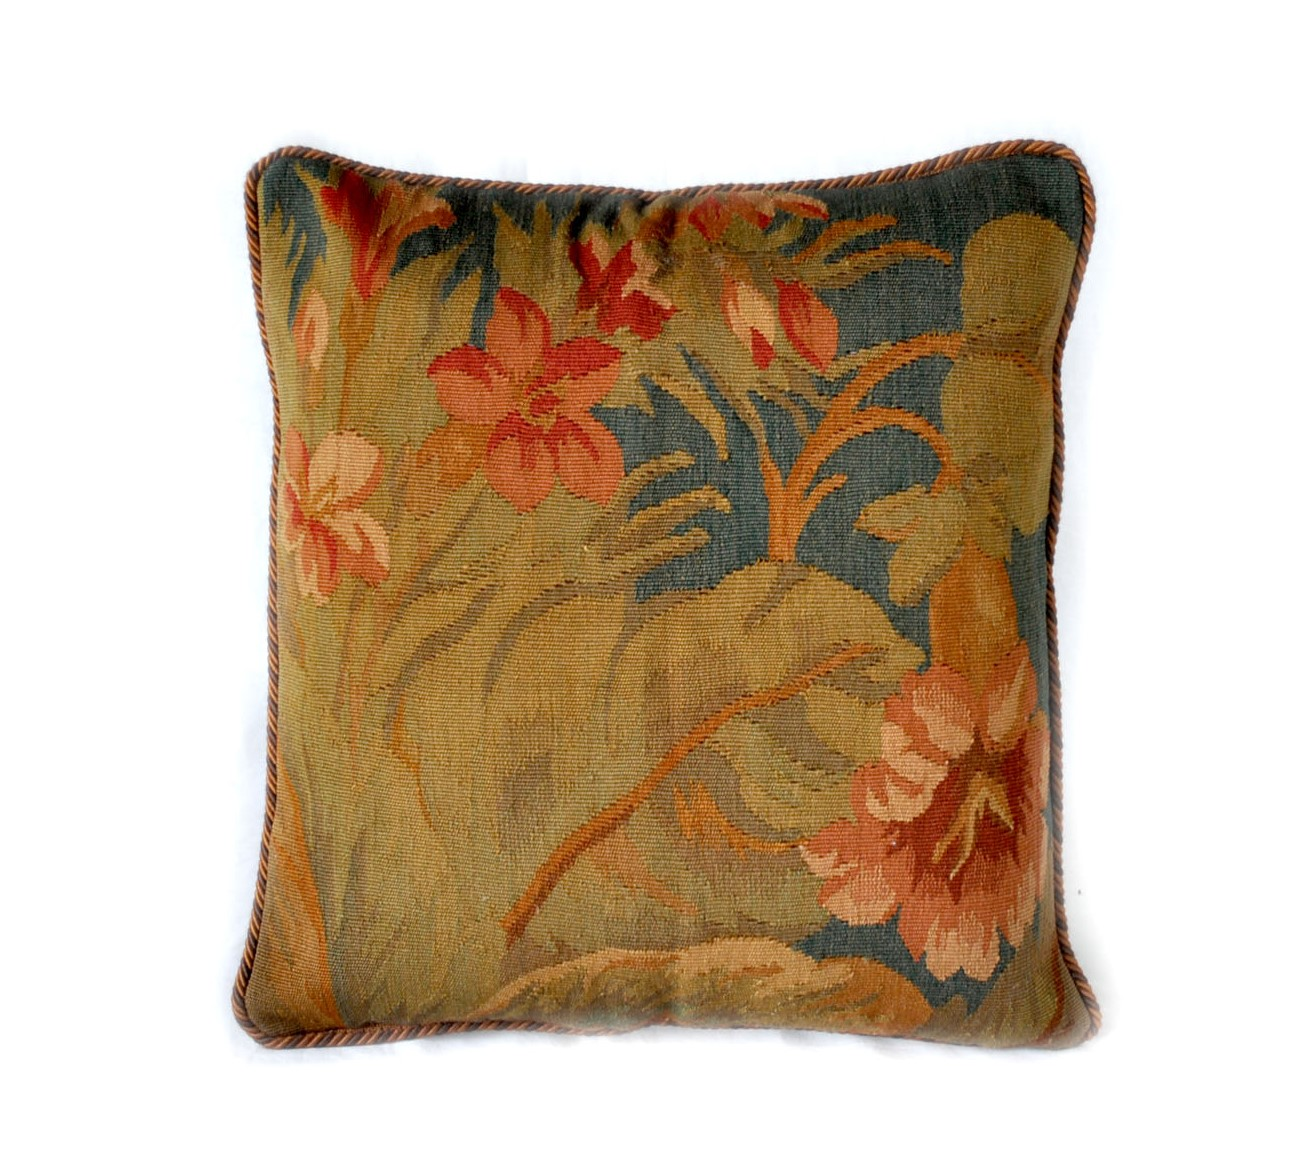 18″x18″ Hand-woven French Gobelins Tapestry Weave Wool Aubusson Cushion Cover Pillow Case 12980977